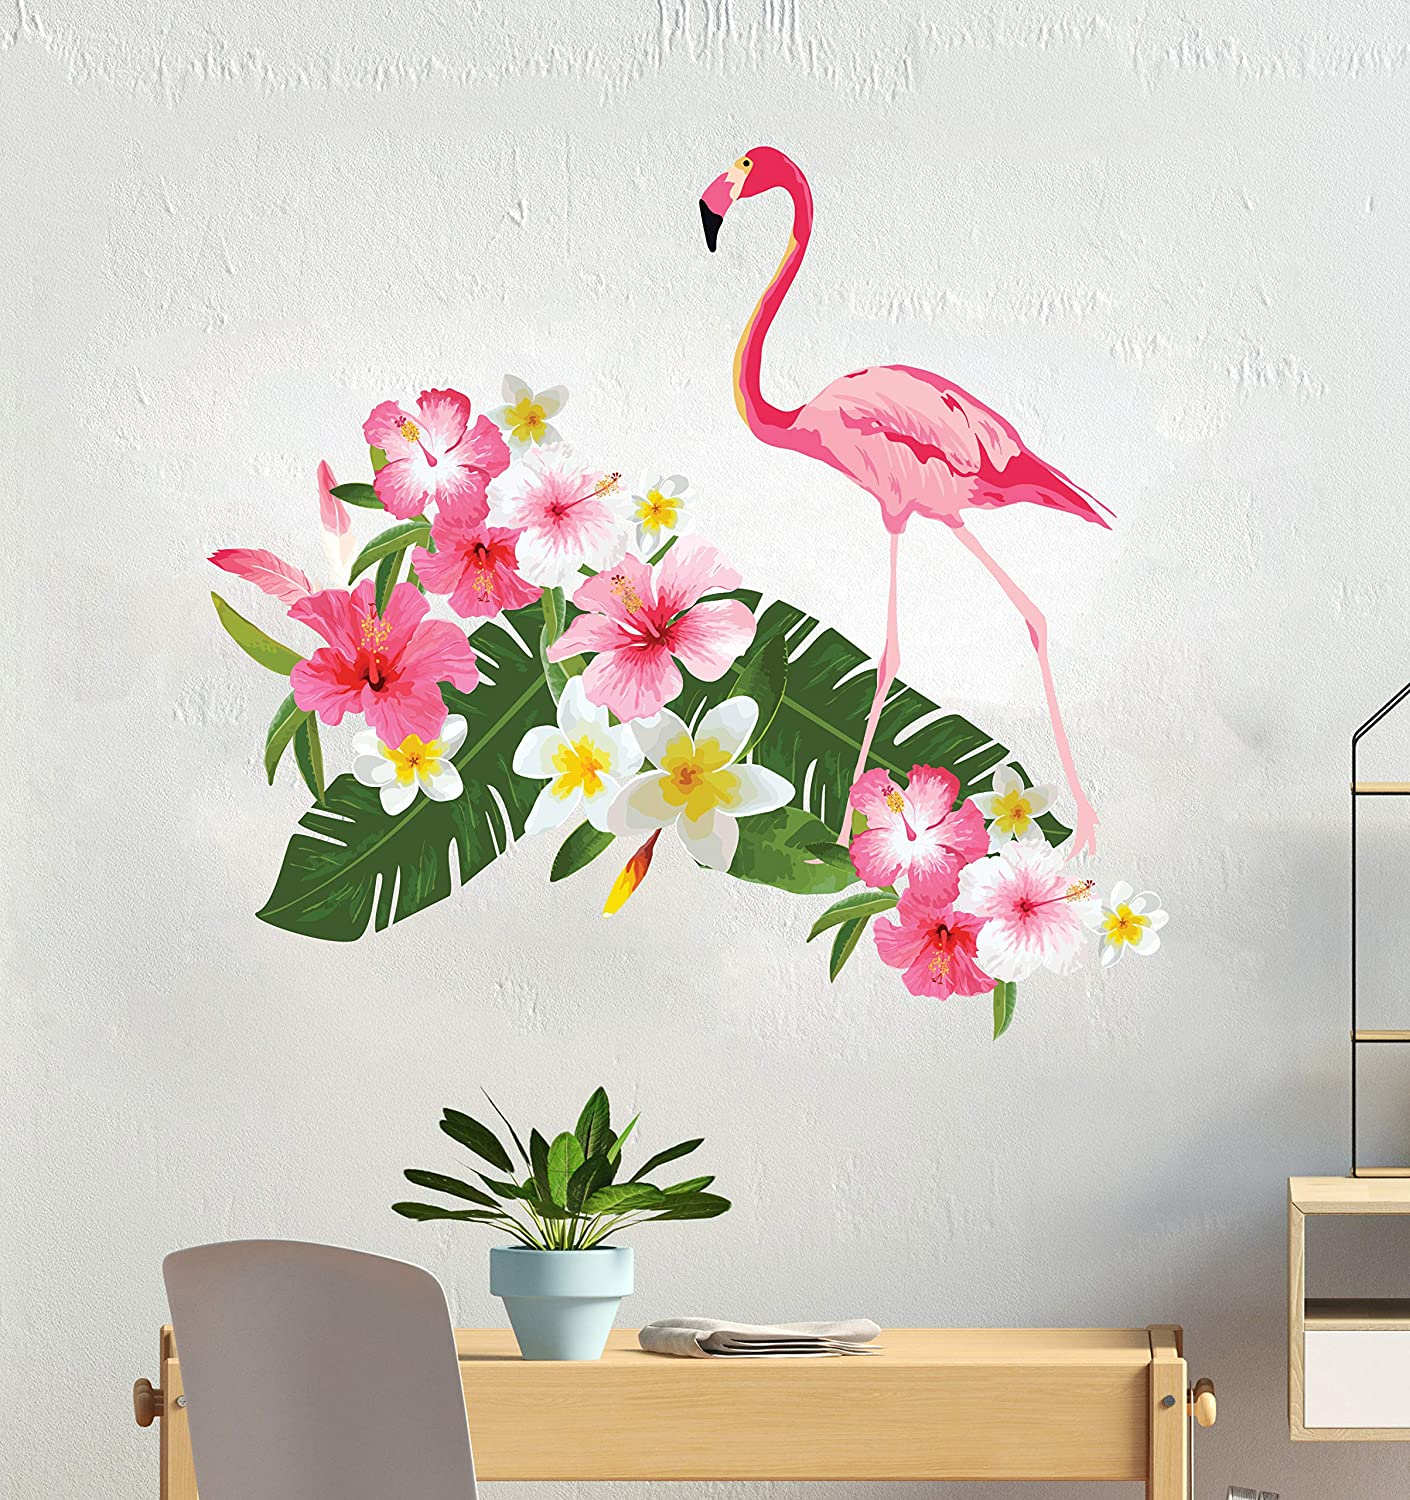 Tropical Mural Wall Decoration CG1142 Botanical Leaf Vinyl Design Big Sticker For Any Room Decor Tropical And Colorful Leaves Wall Decal